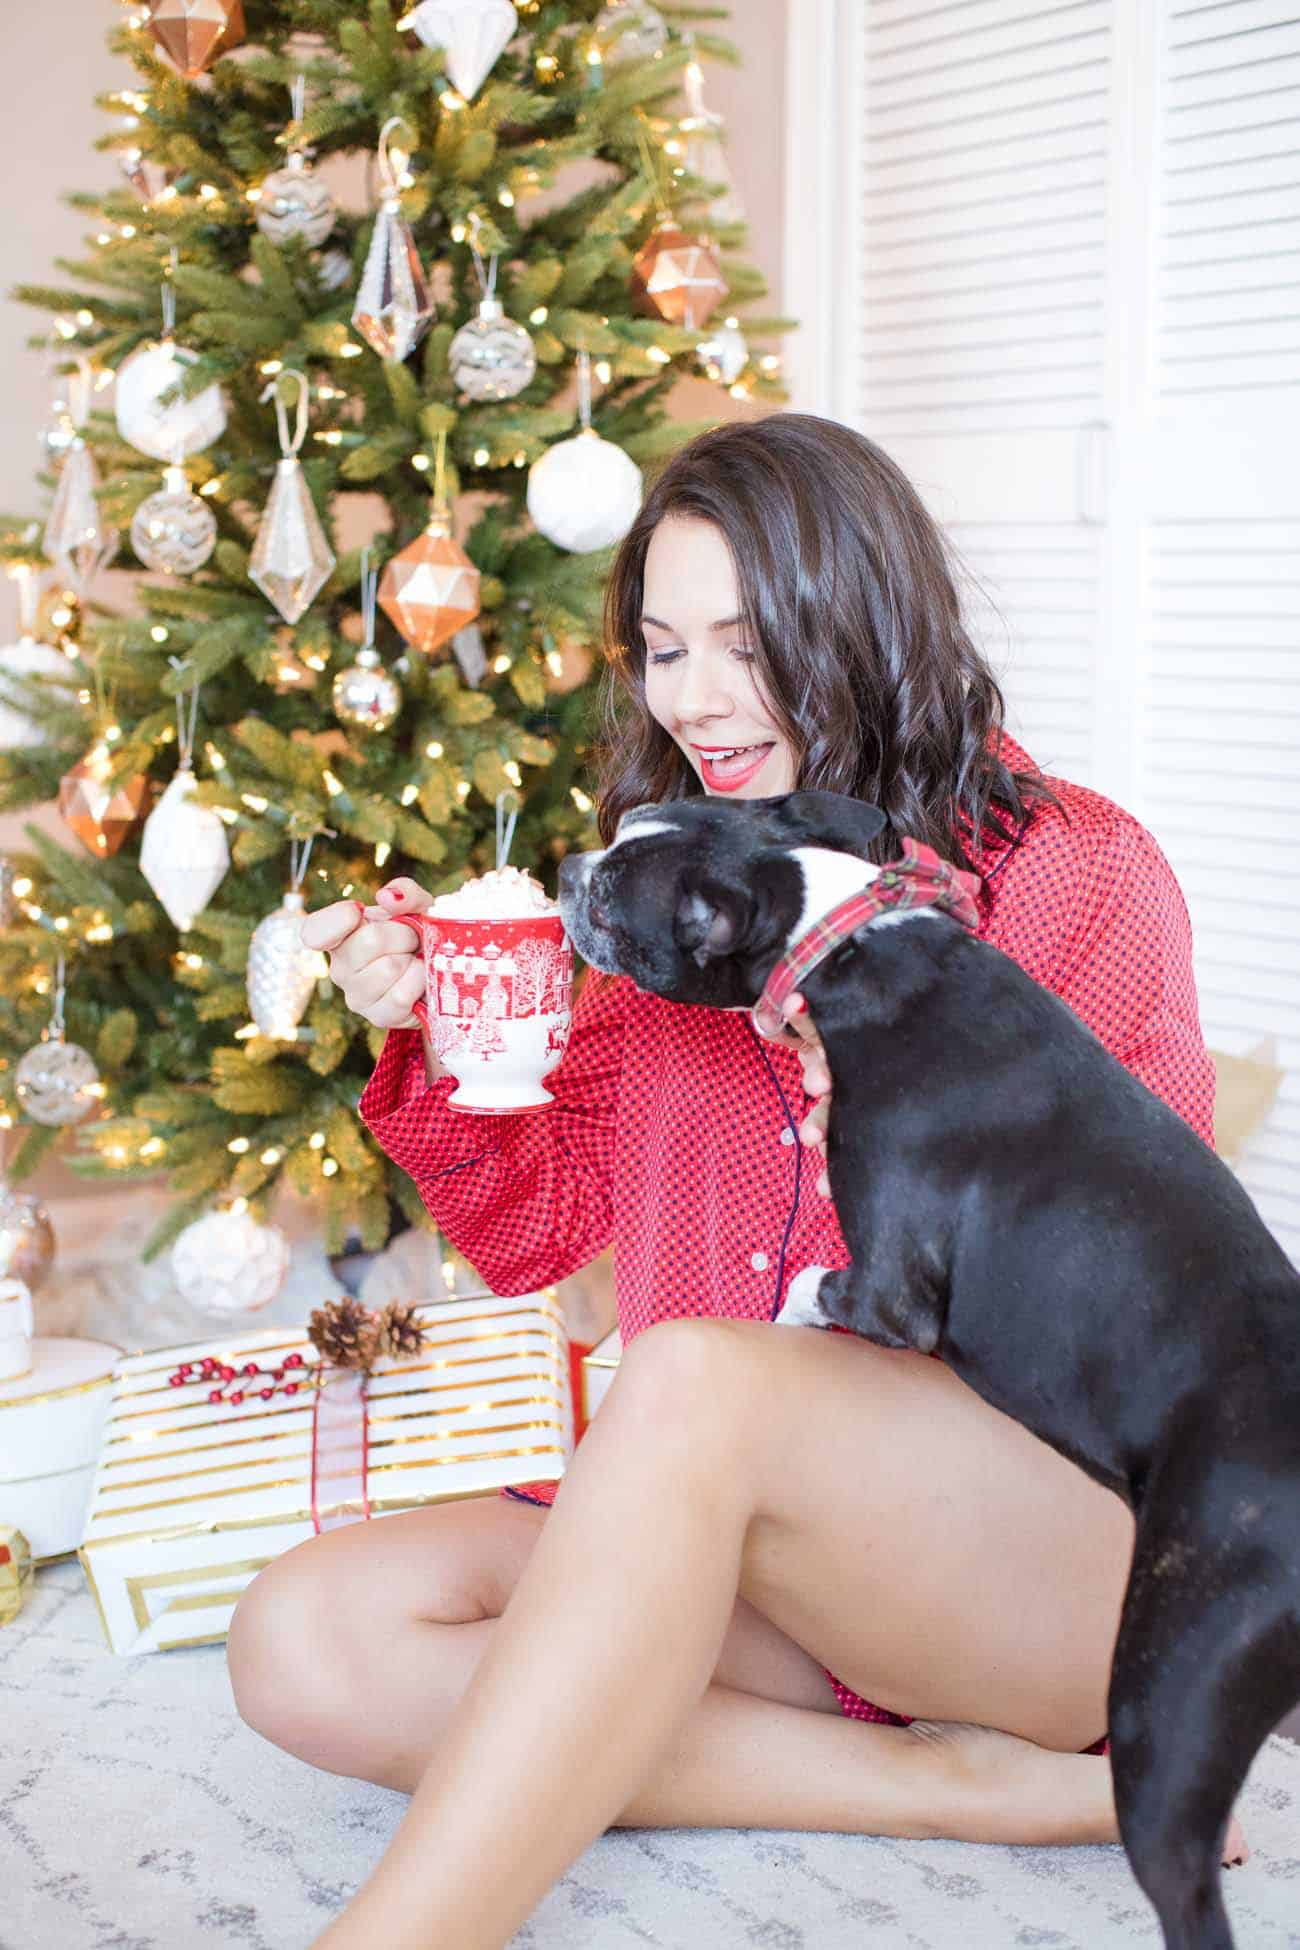 spiked hot chocolate recipe, christmas ideas, holiday cocktails, christmas pajamas outfit - My Style Vita @mystylevita